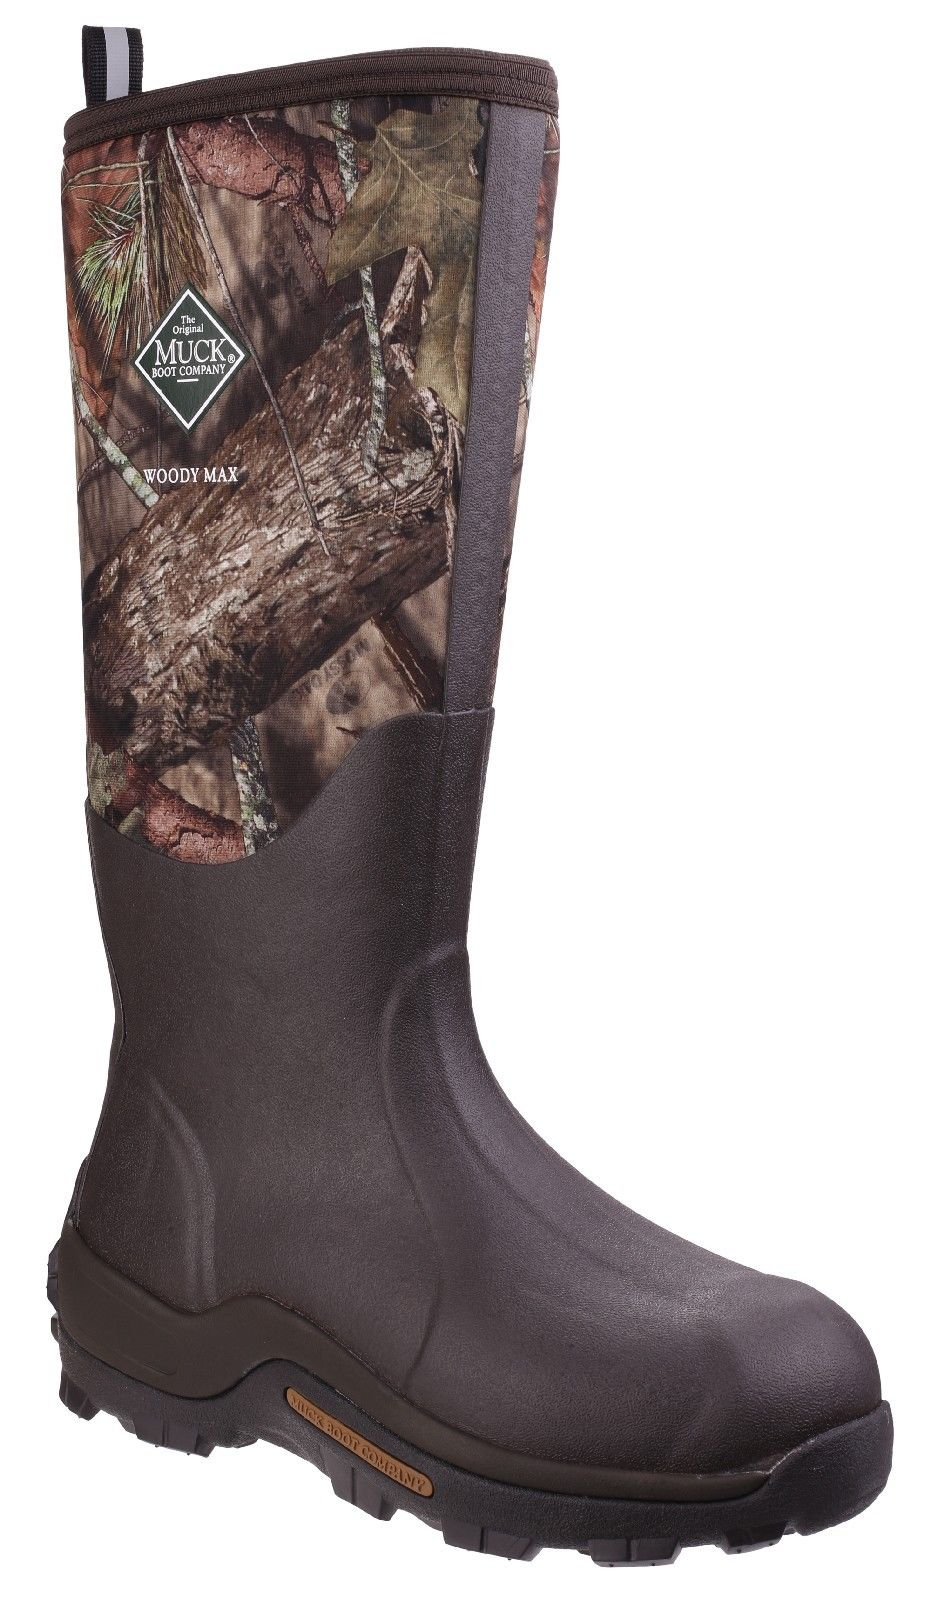 Muck green Woody Max WDM-MOCT moss green Muck unisex non-safety wellington boot size 4-13 8c0738